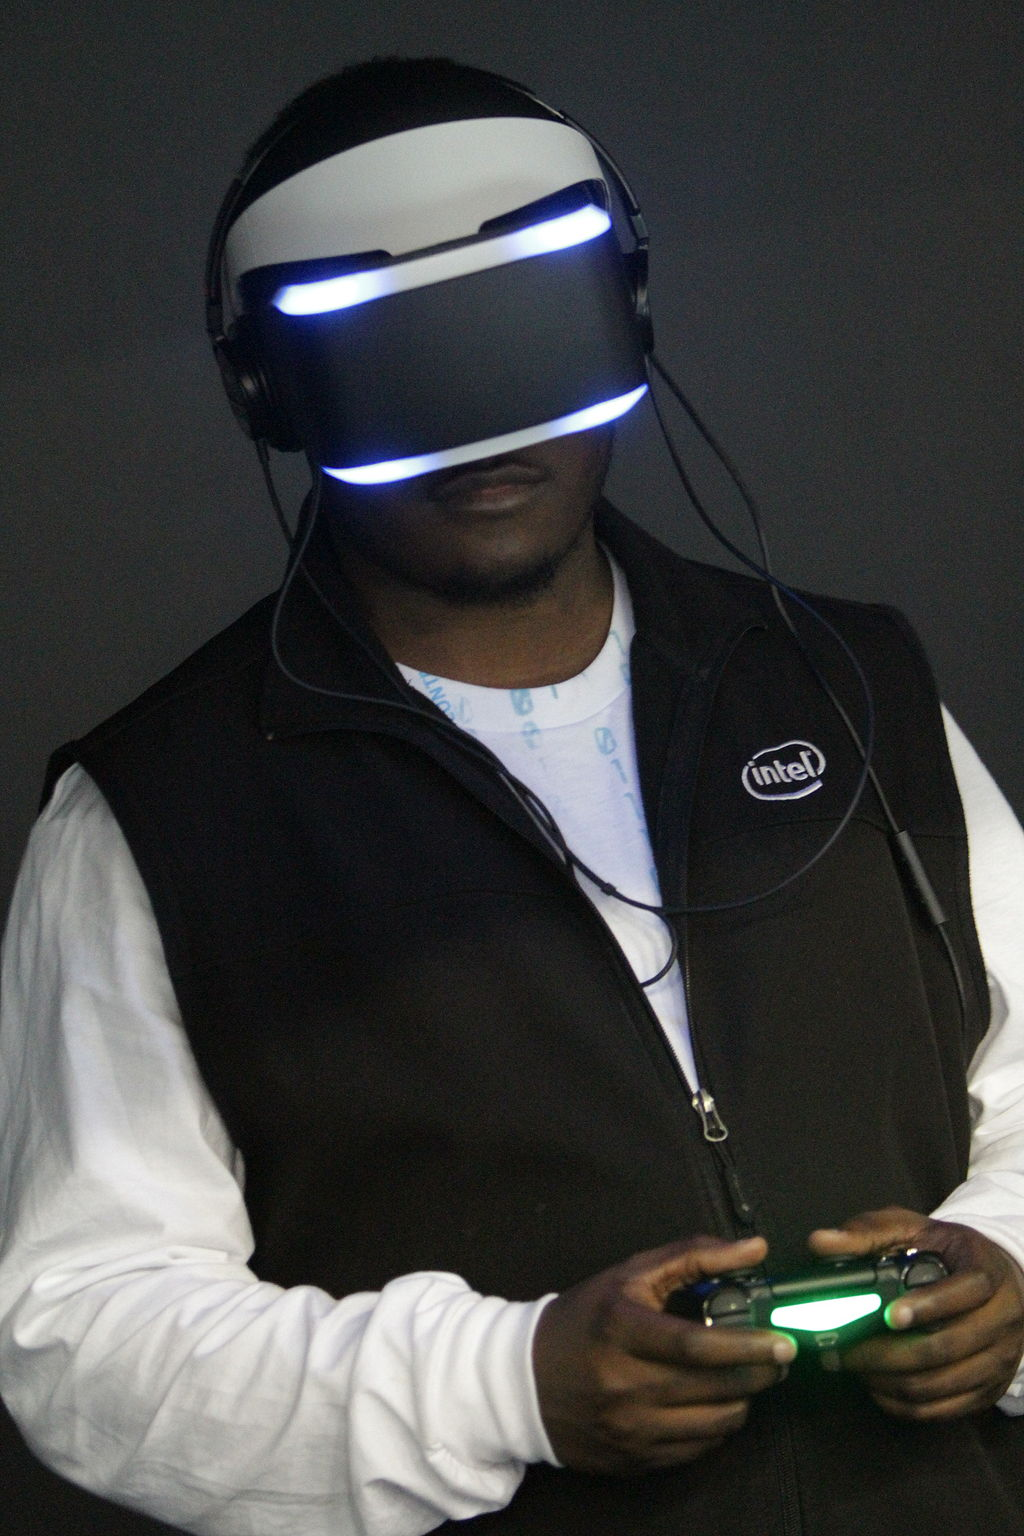 PlayStation VR. Quelle: wikipedia.org / Lizenz: CC BY 2.0